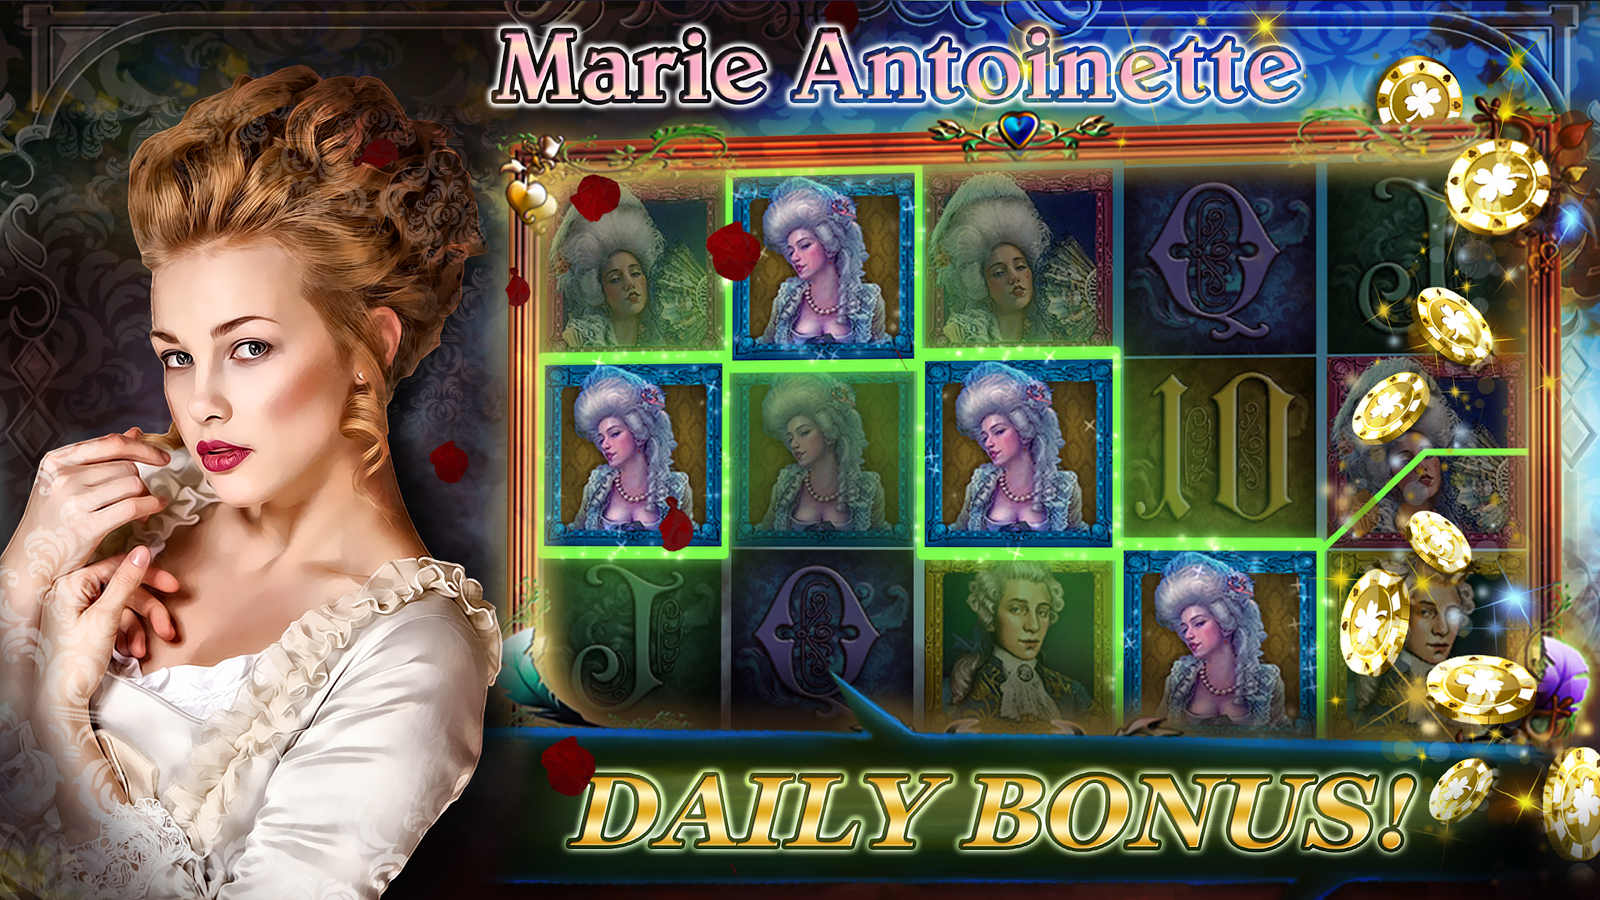 7 freeslots.com party bonus free slots home 1 2 3 4-5 song pk